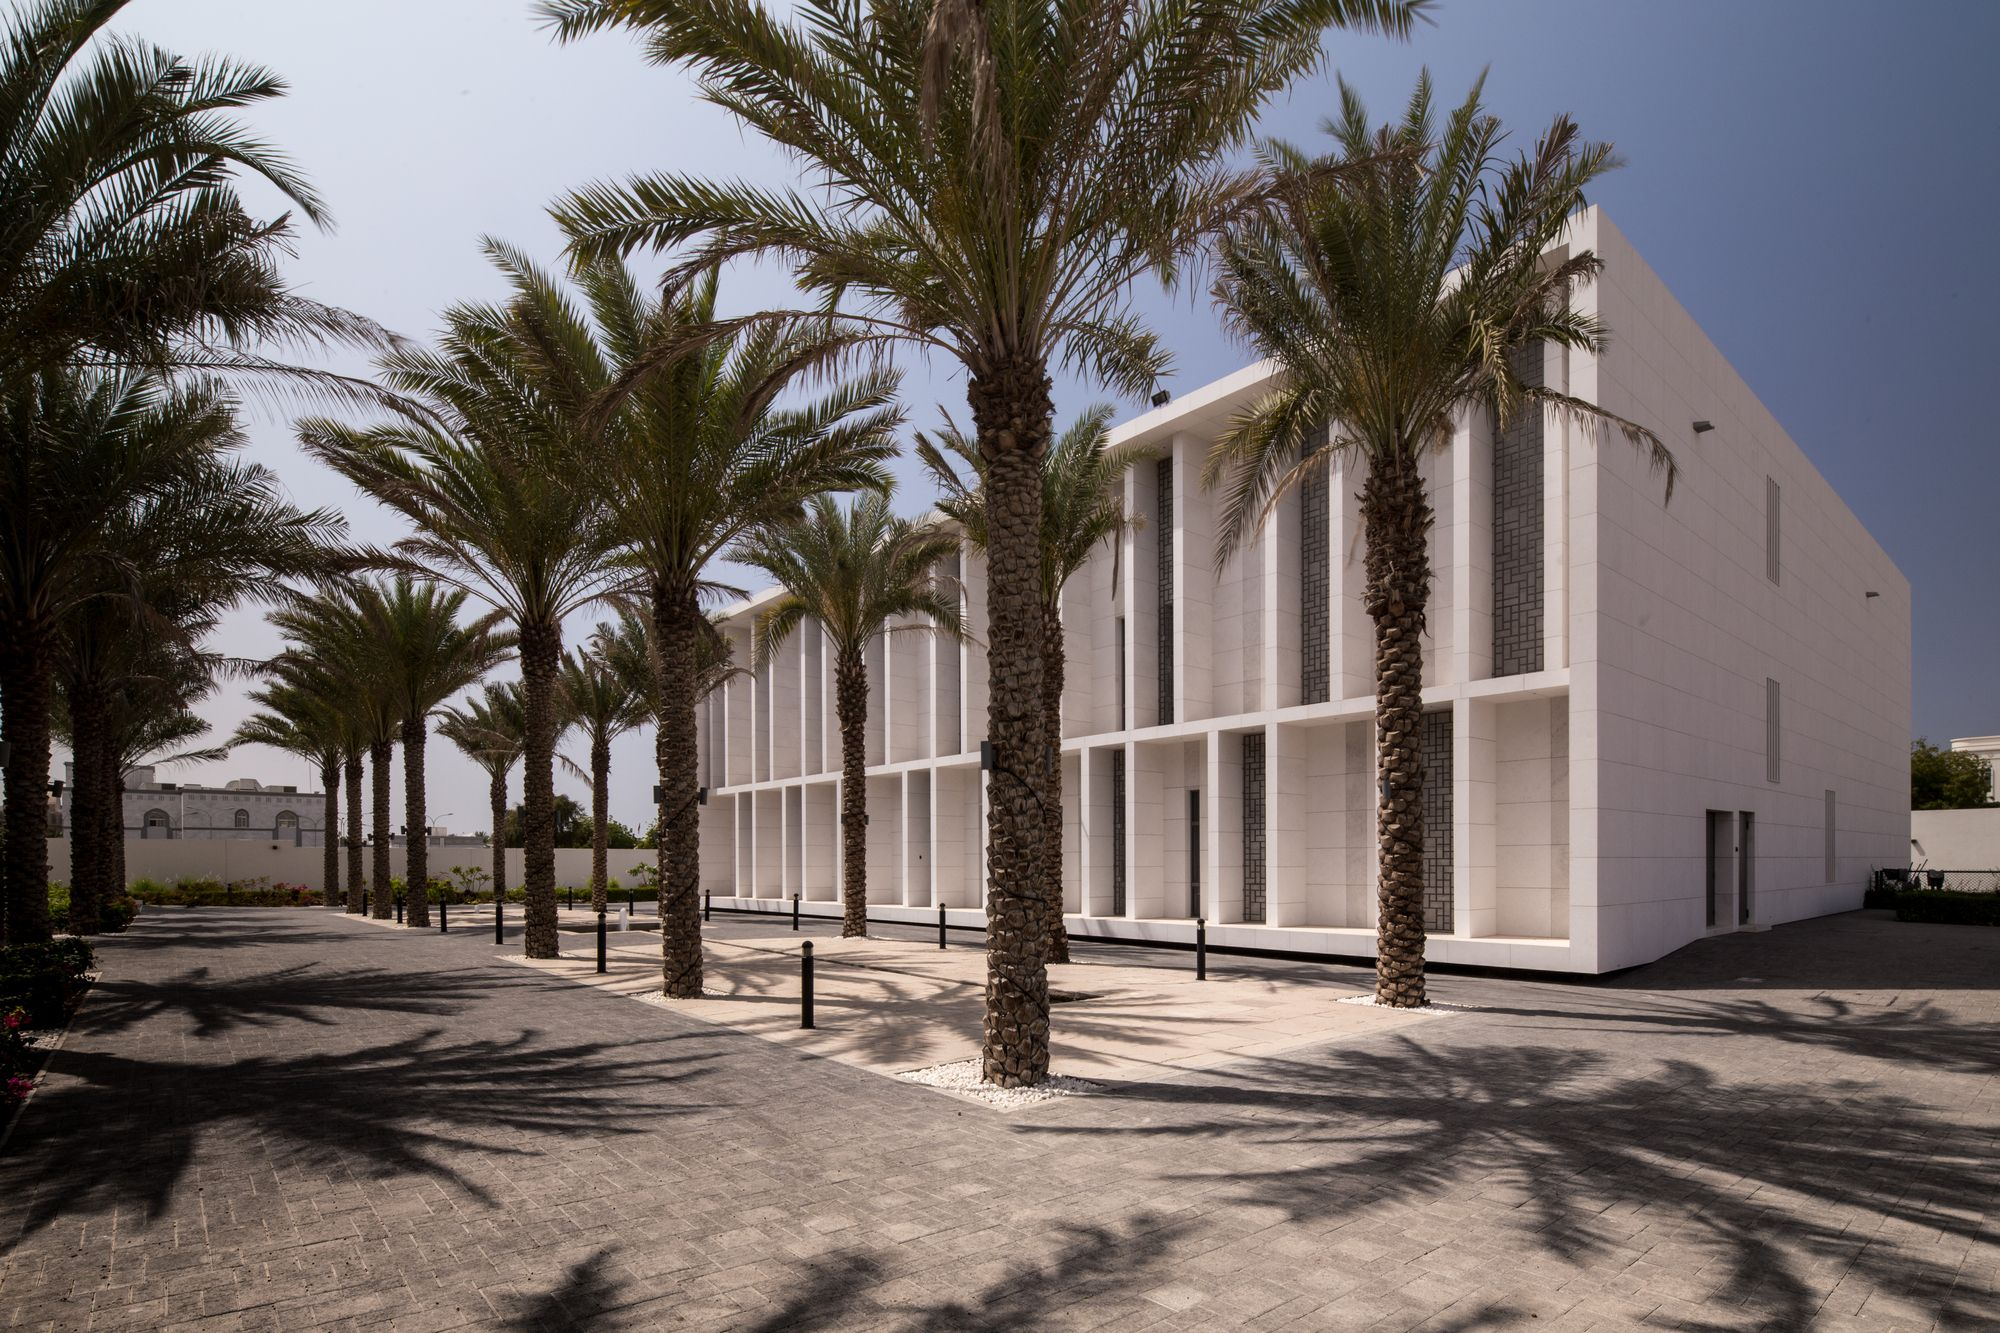 German Embassy in Muscat / Hoehler + alSalmy Muscat